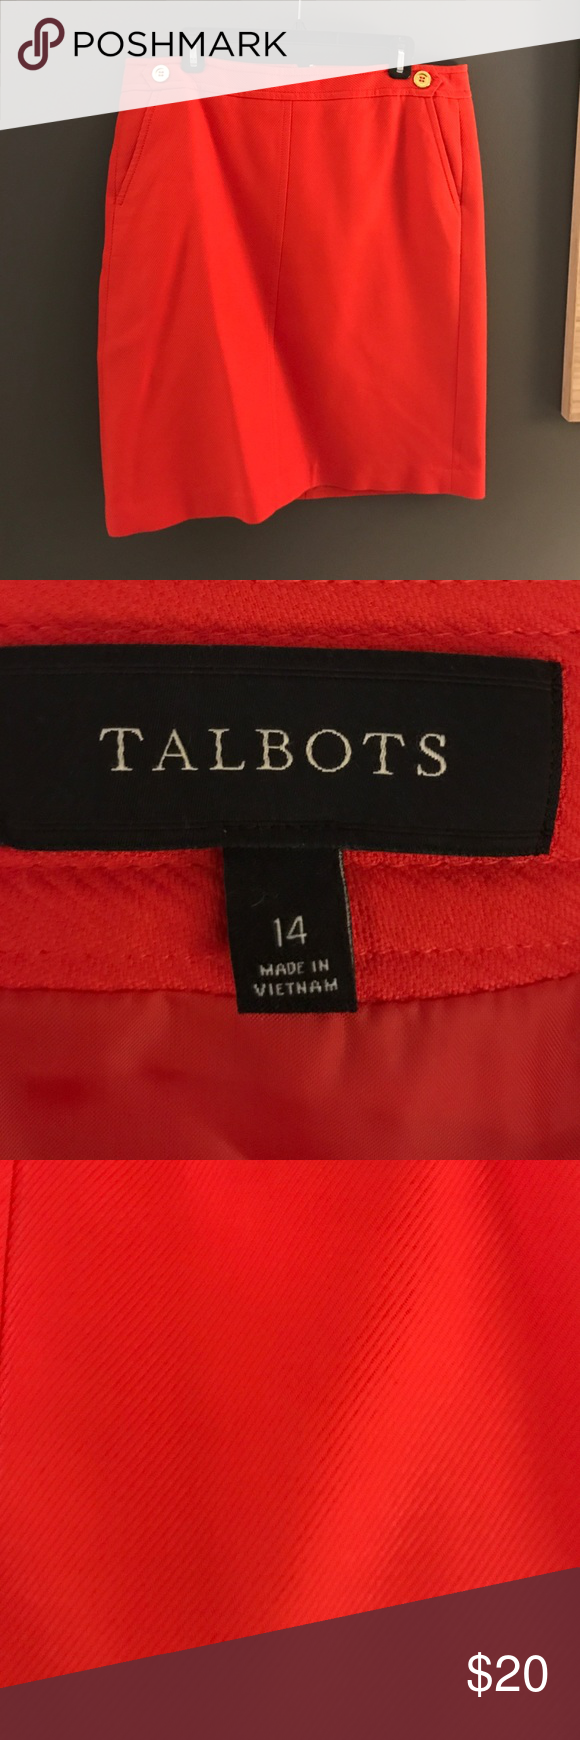 Great Spring Work Skirt Orange/Red Skirt in EUC. Worn only once Talbots Skirts Midi